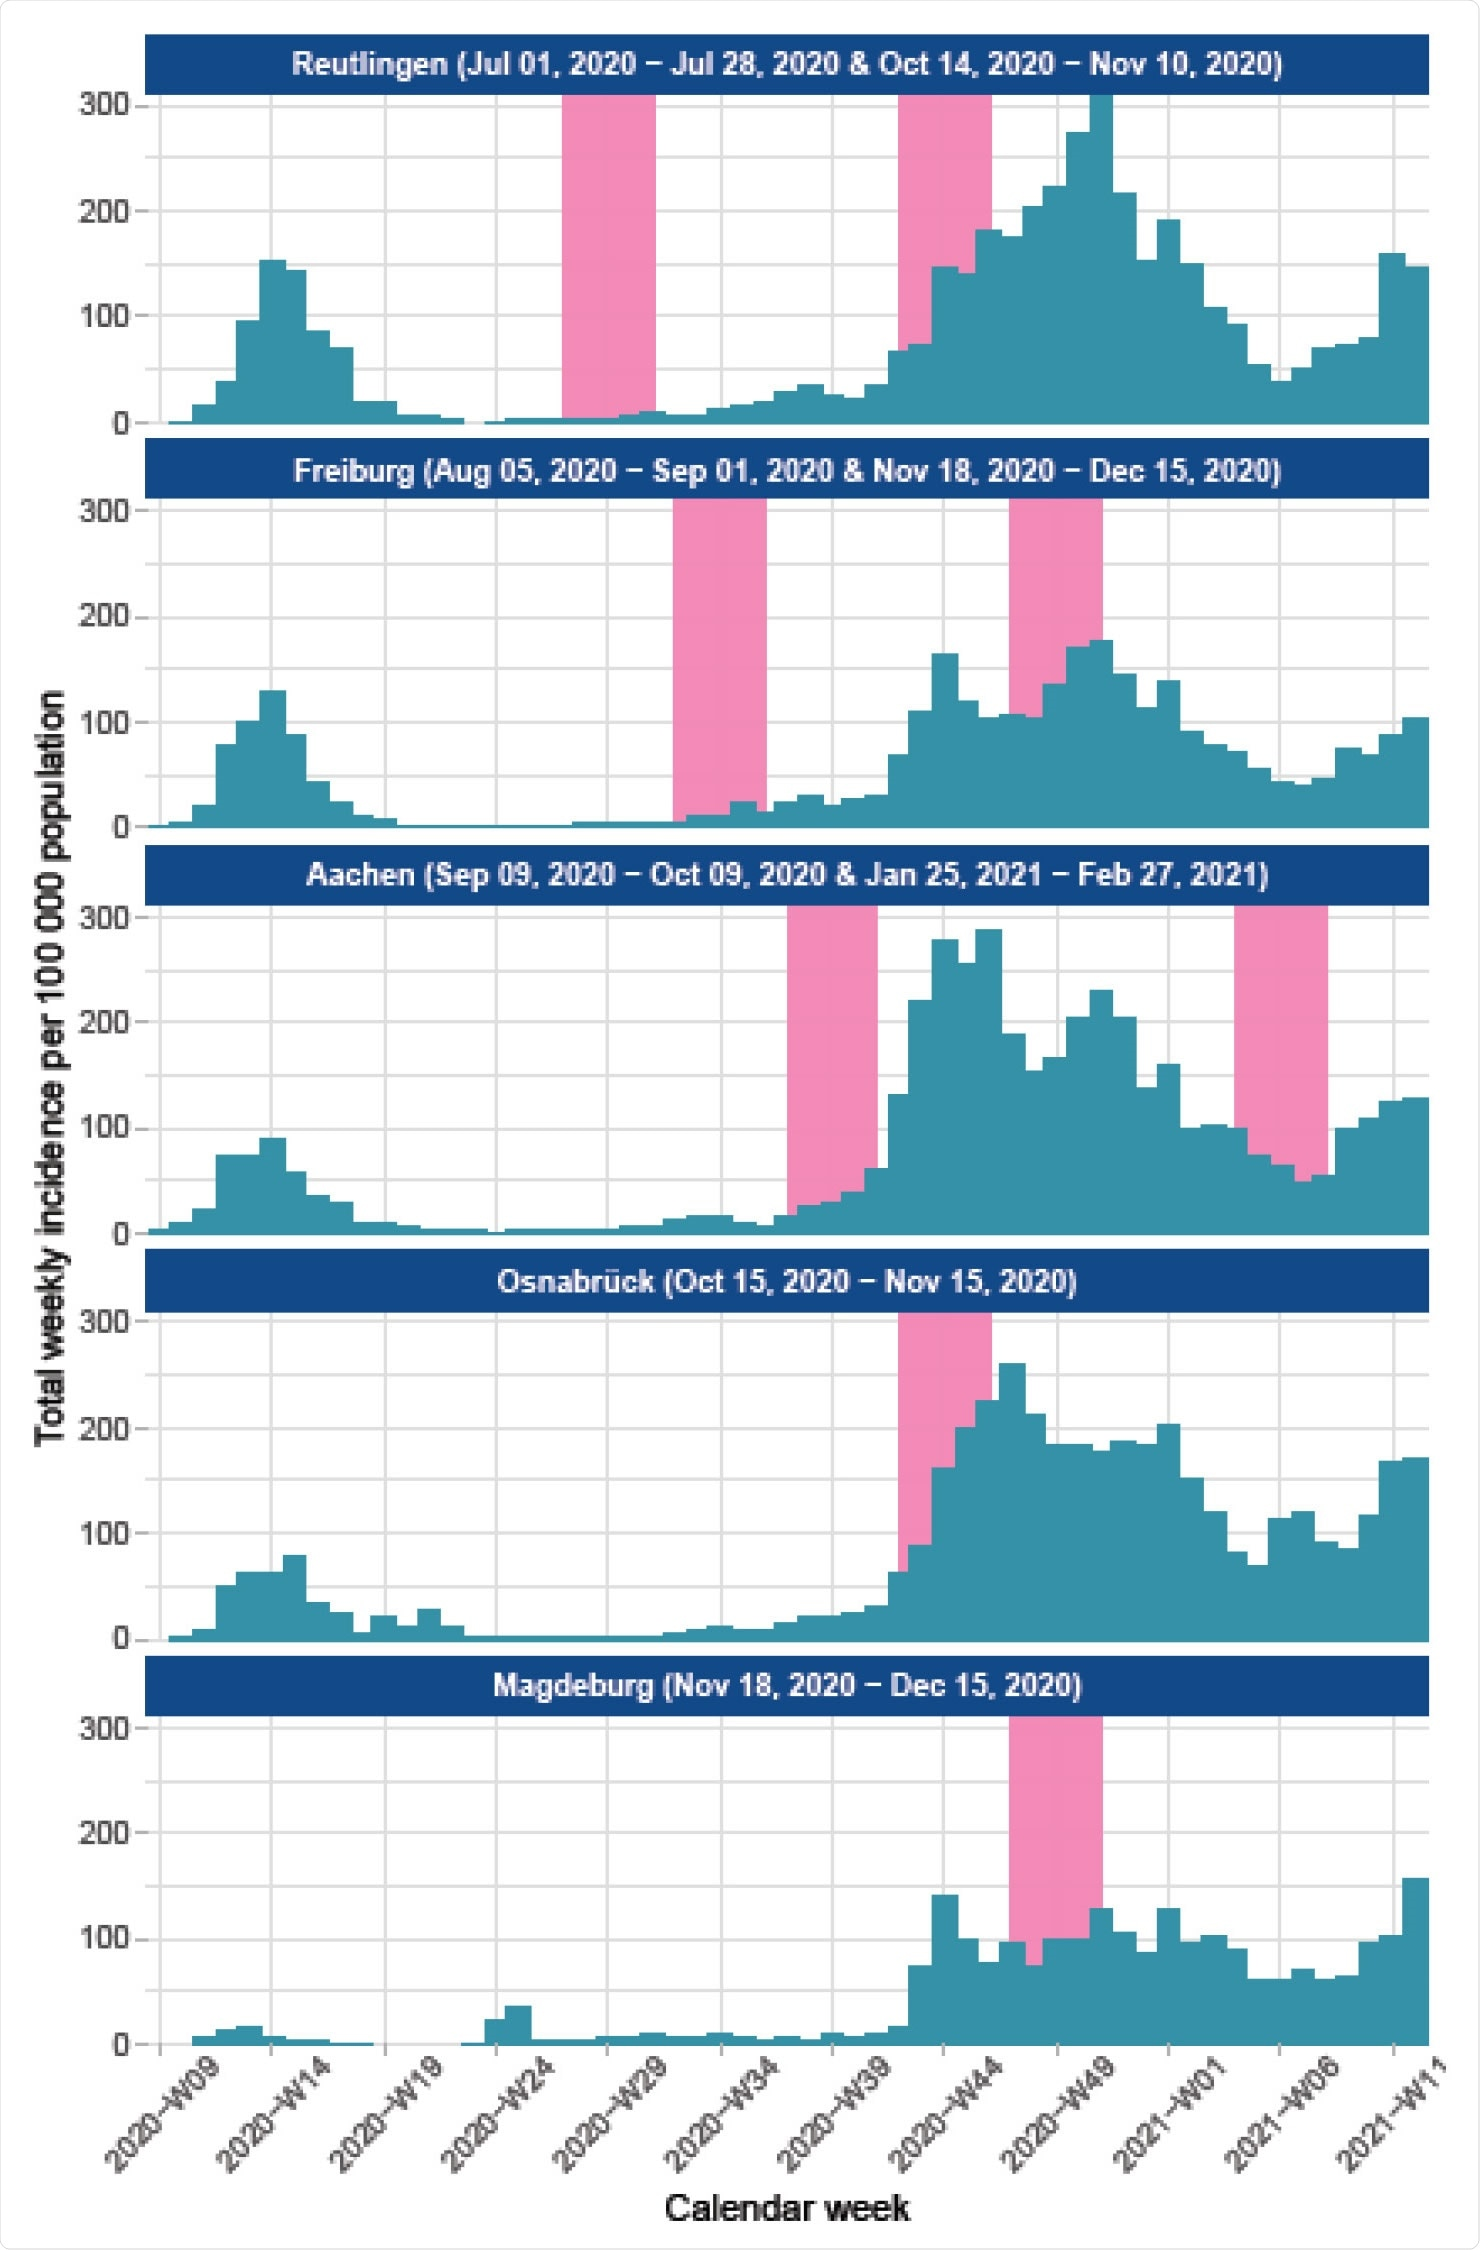 MuSPAD sampling time per site compared with reported cases Source @RKI in Germany, July 2020-February 2021, Data for rural area and city Osnabrück and Freiburg aggregated.